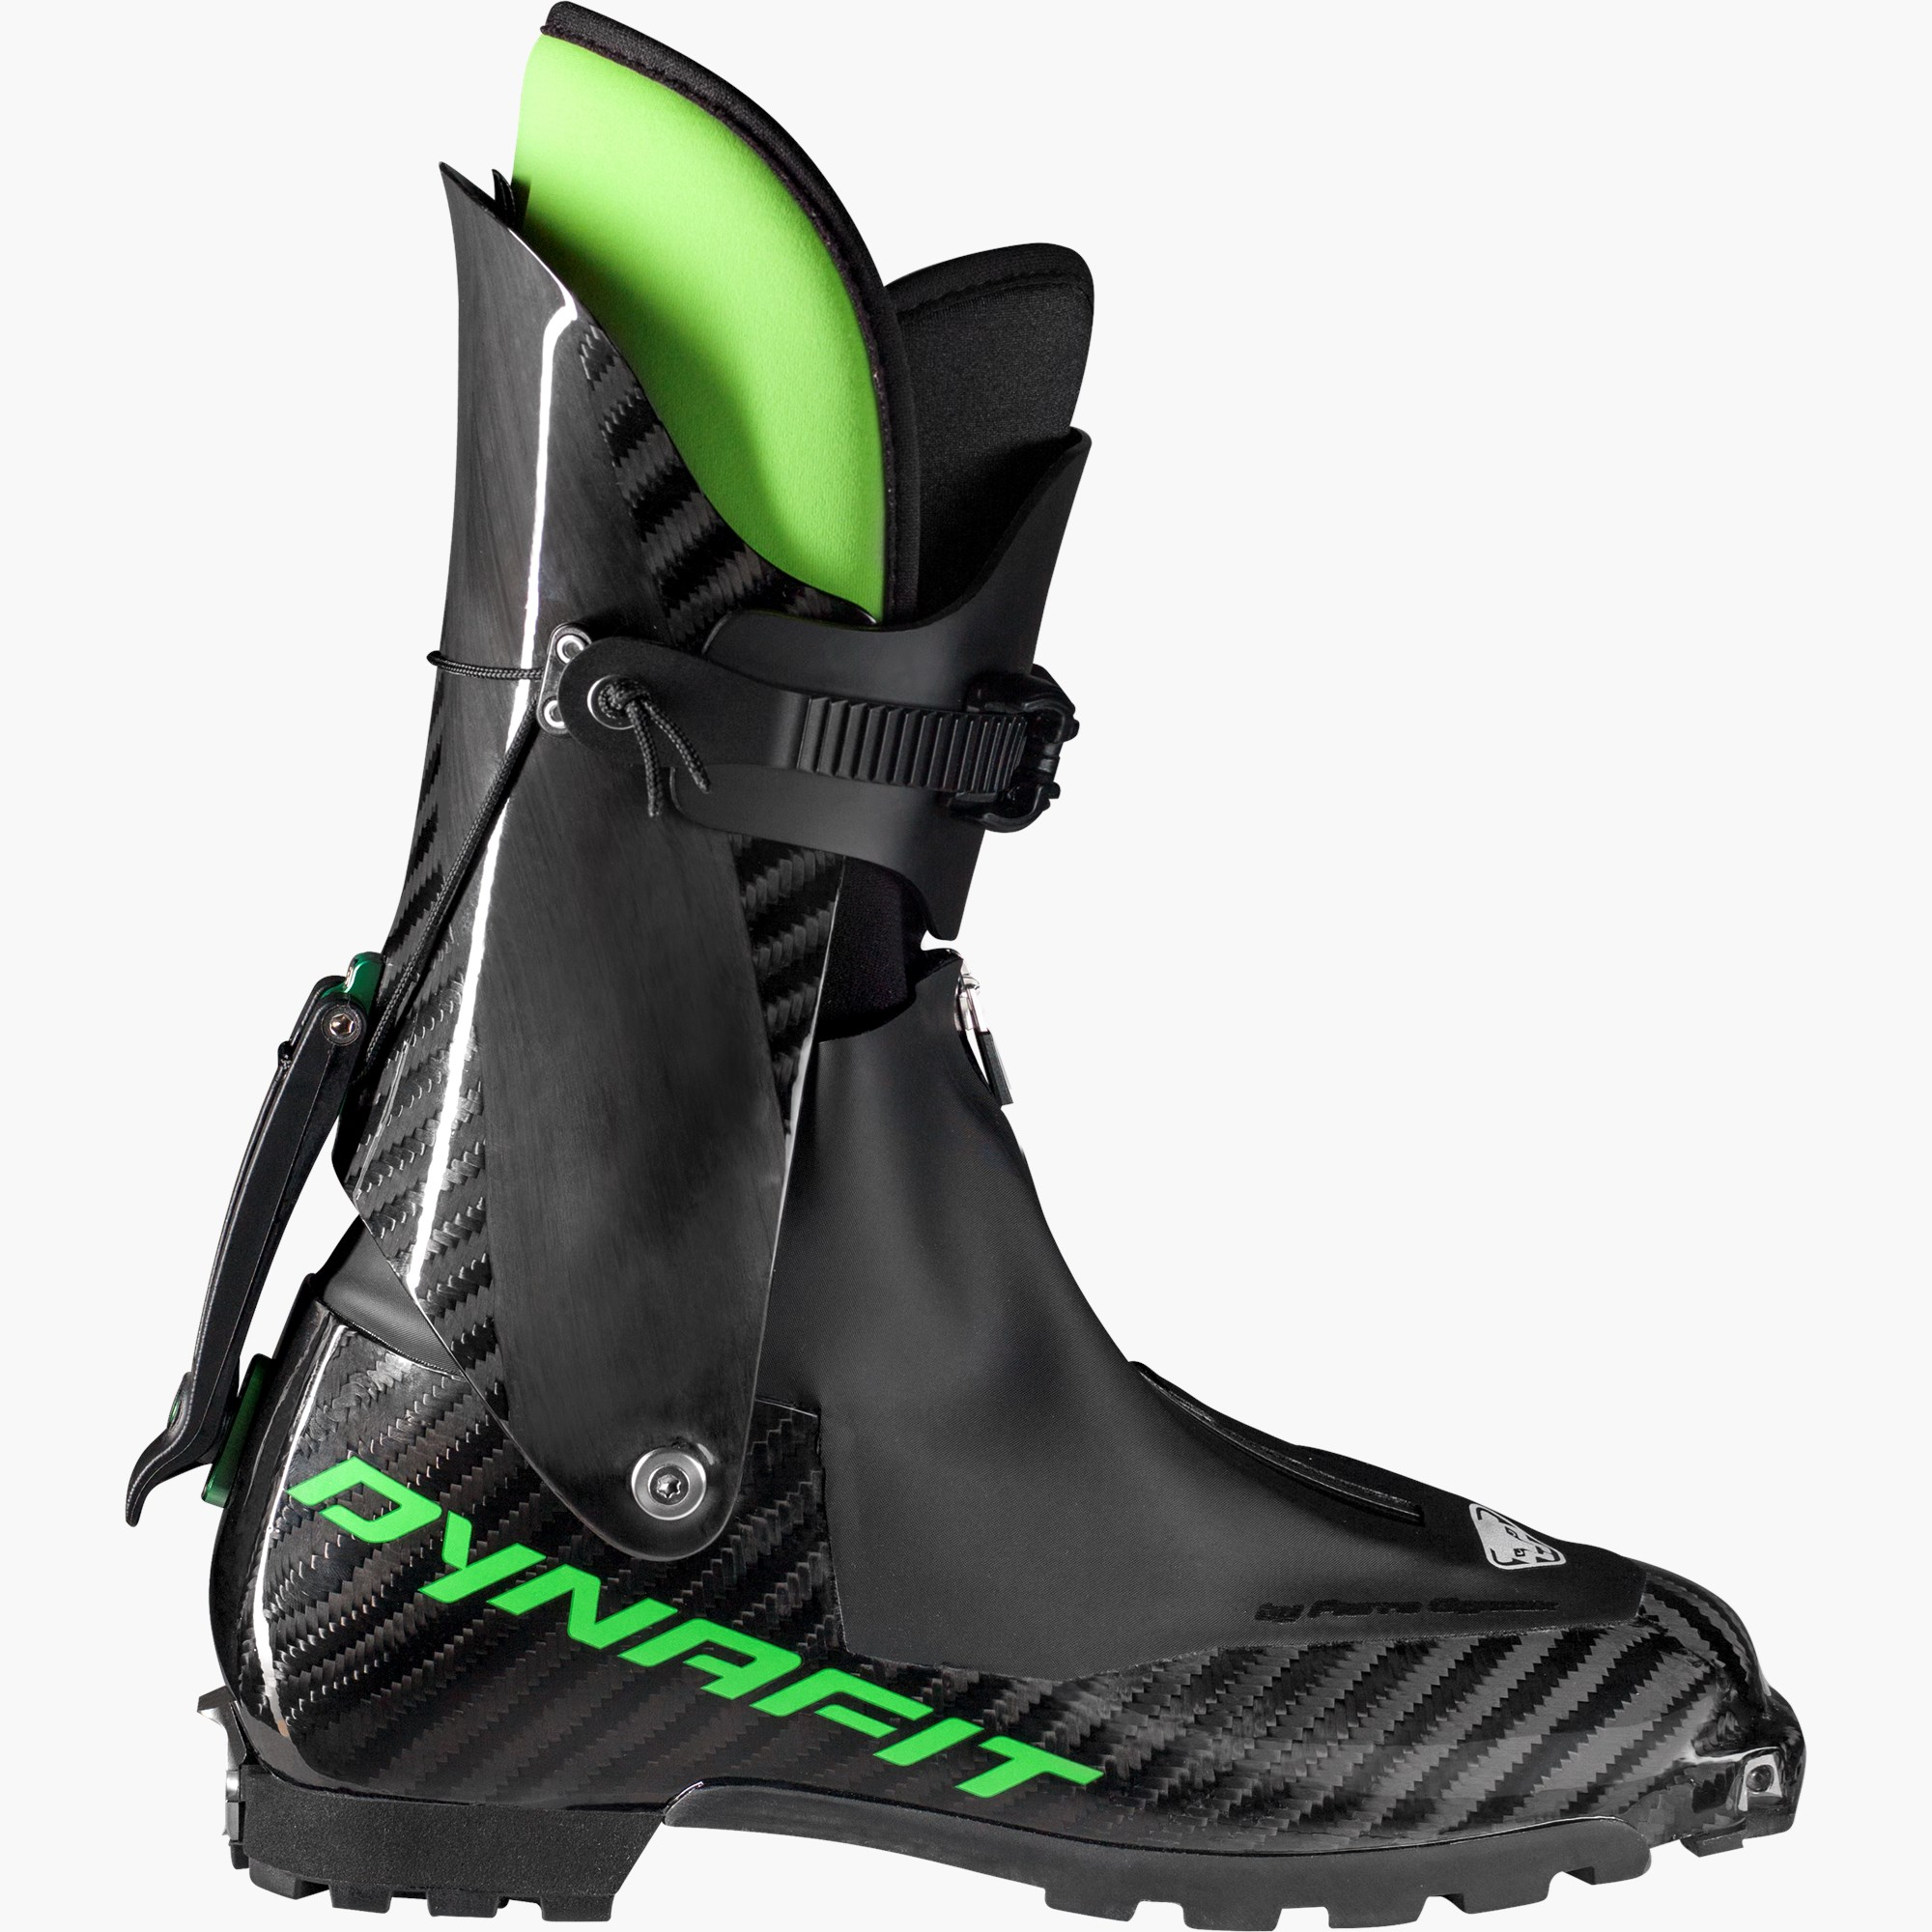 Carbonio Boot by Pierre Gignoux